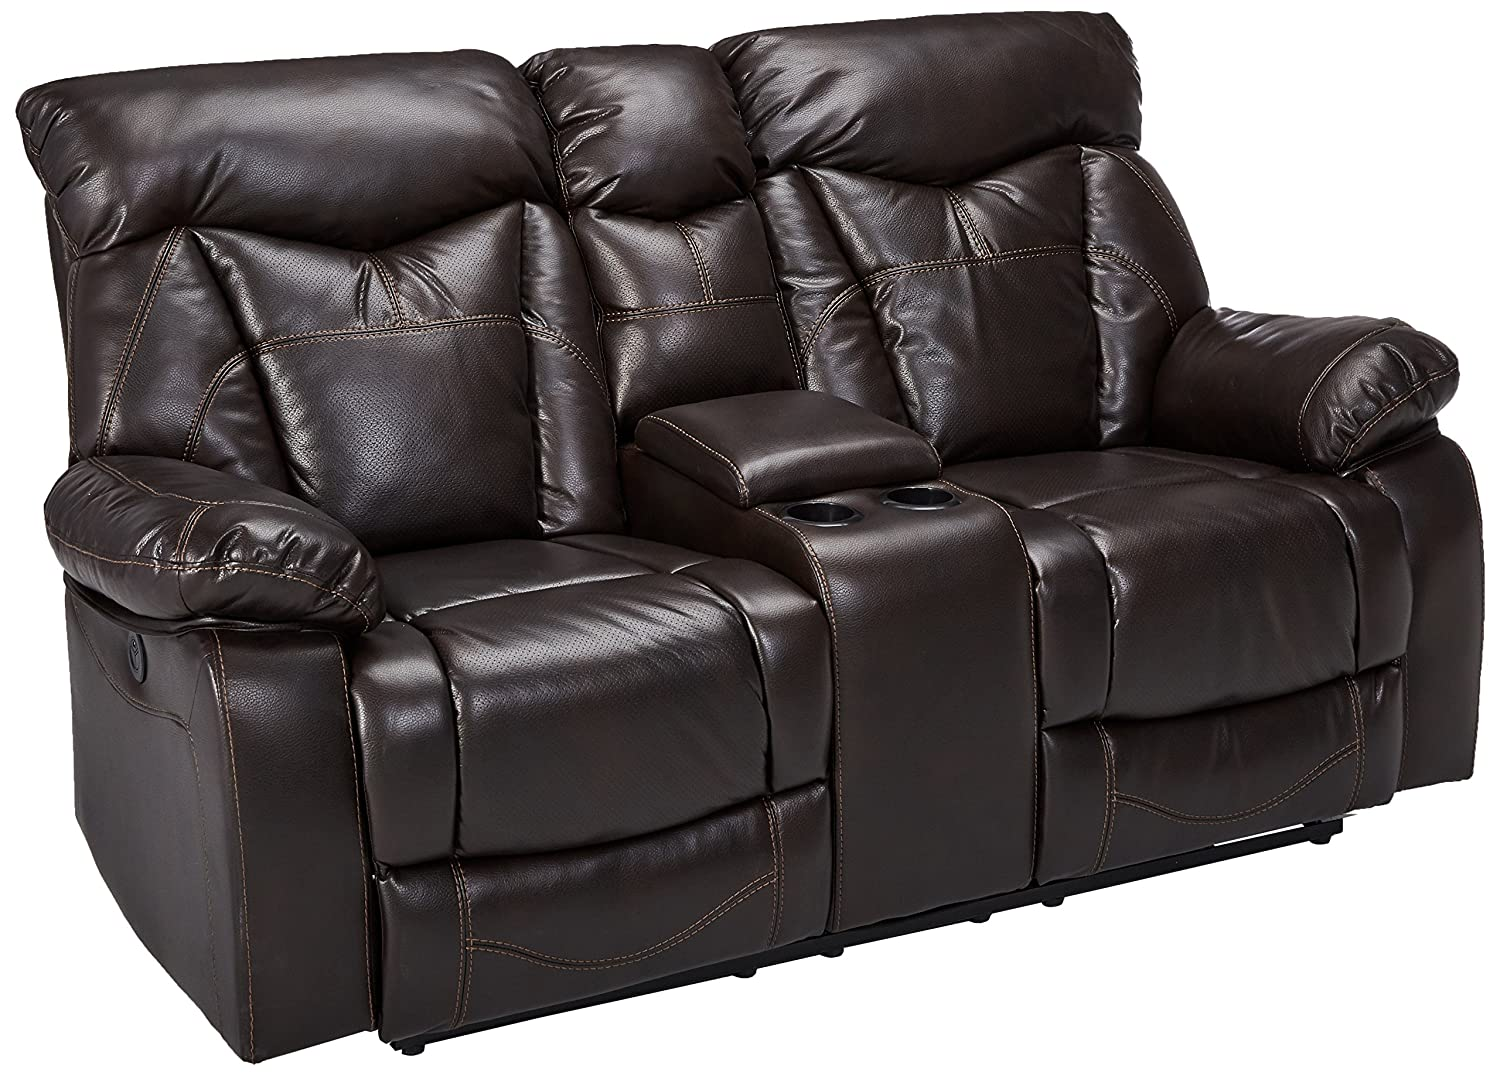 Zimmerman Power Loveseat with Cup Holders Dark Brown